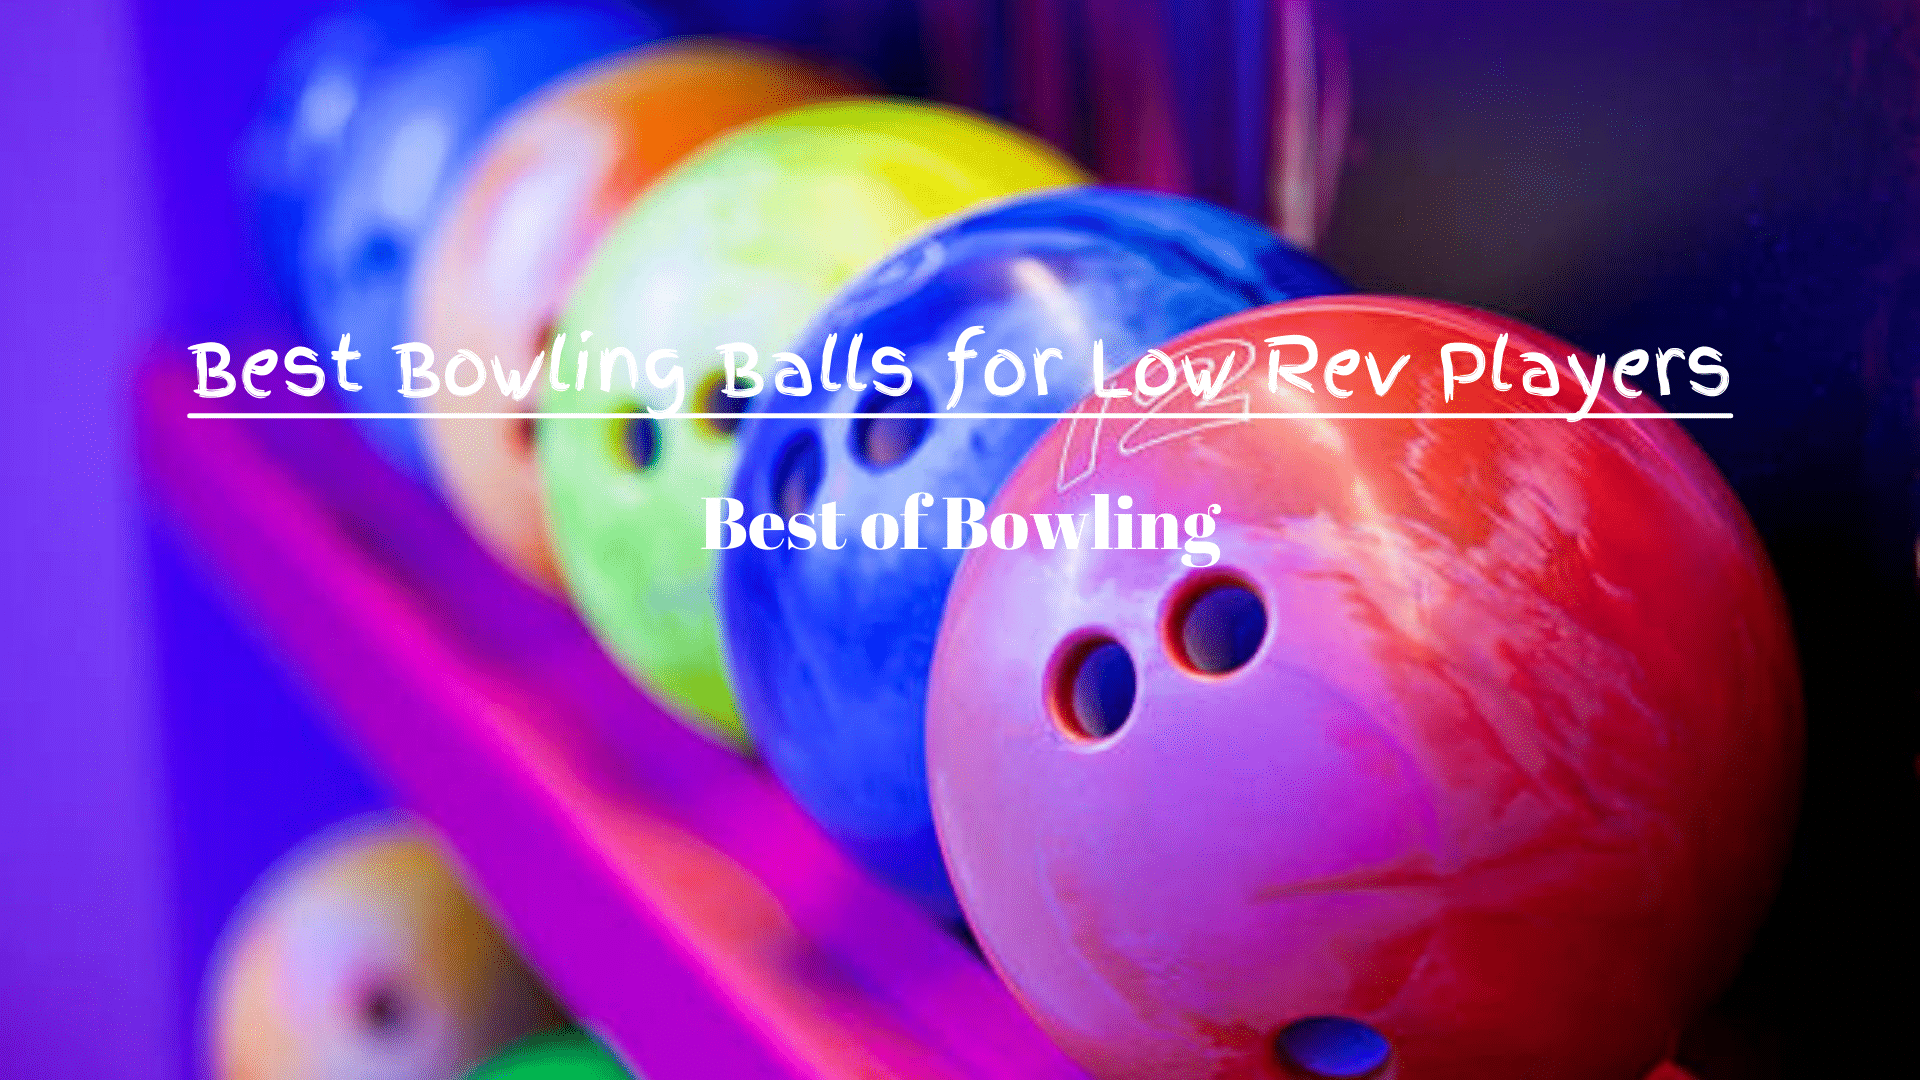 Best Bowling Balls for Low Rev Players